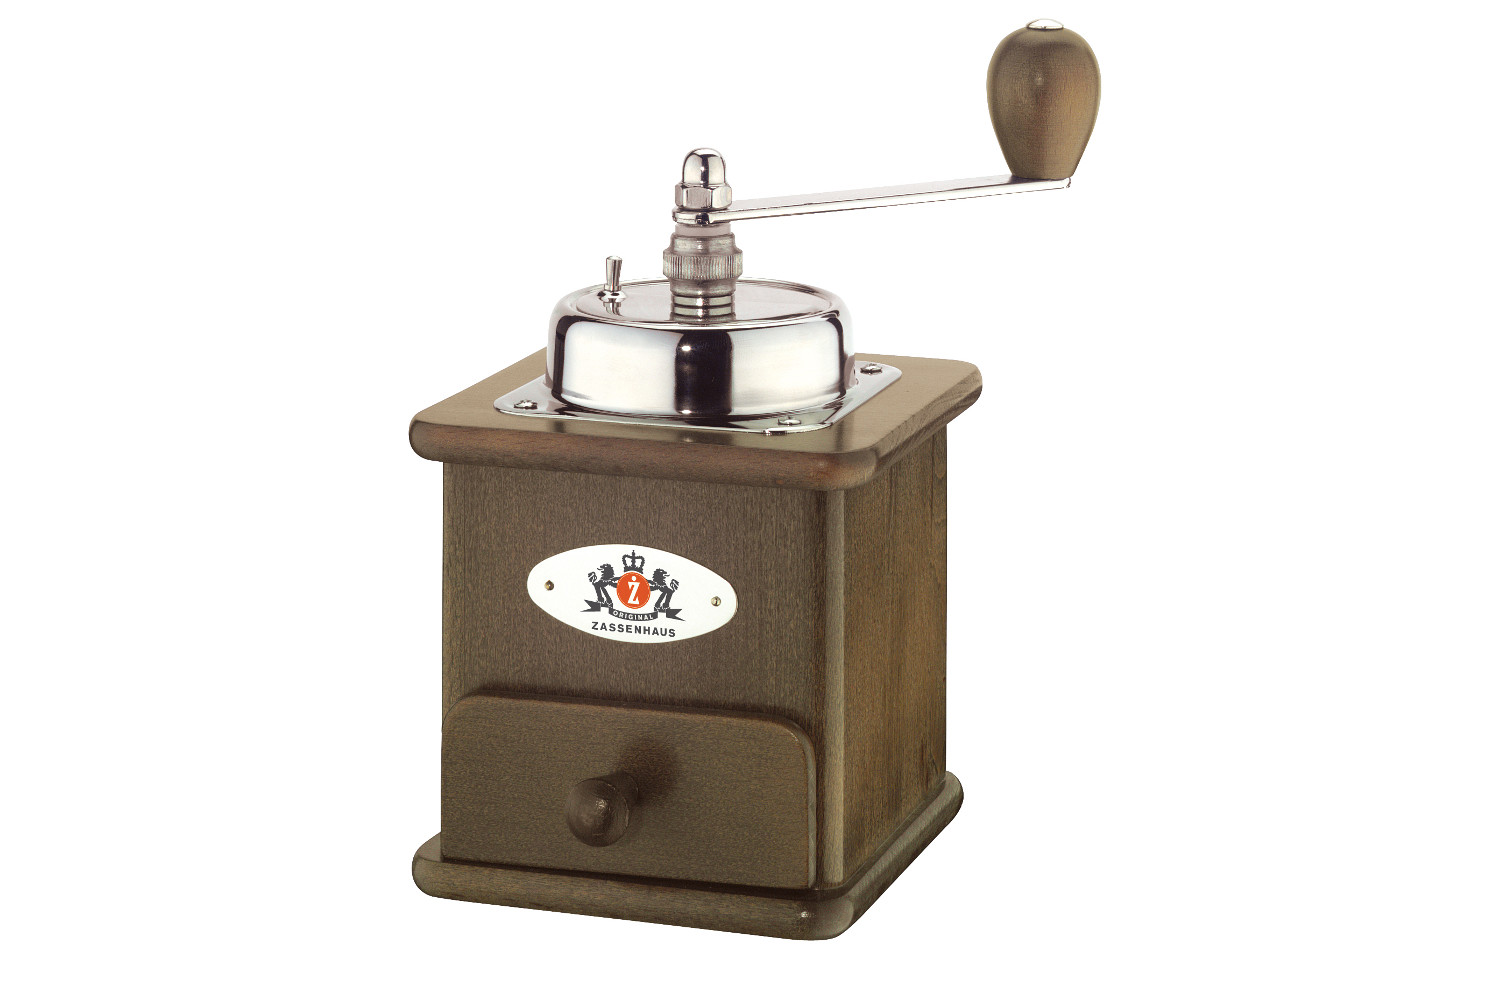 Zassenhaus Brasilia Manual Coffee Mill - Dark Beech Wood